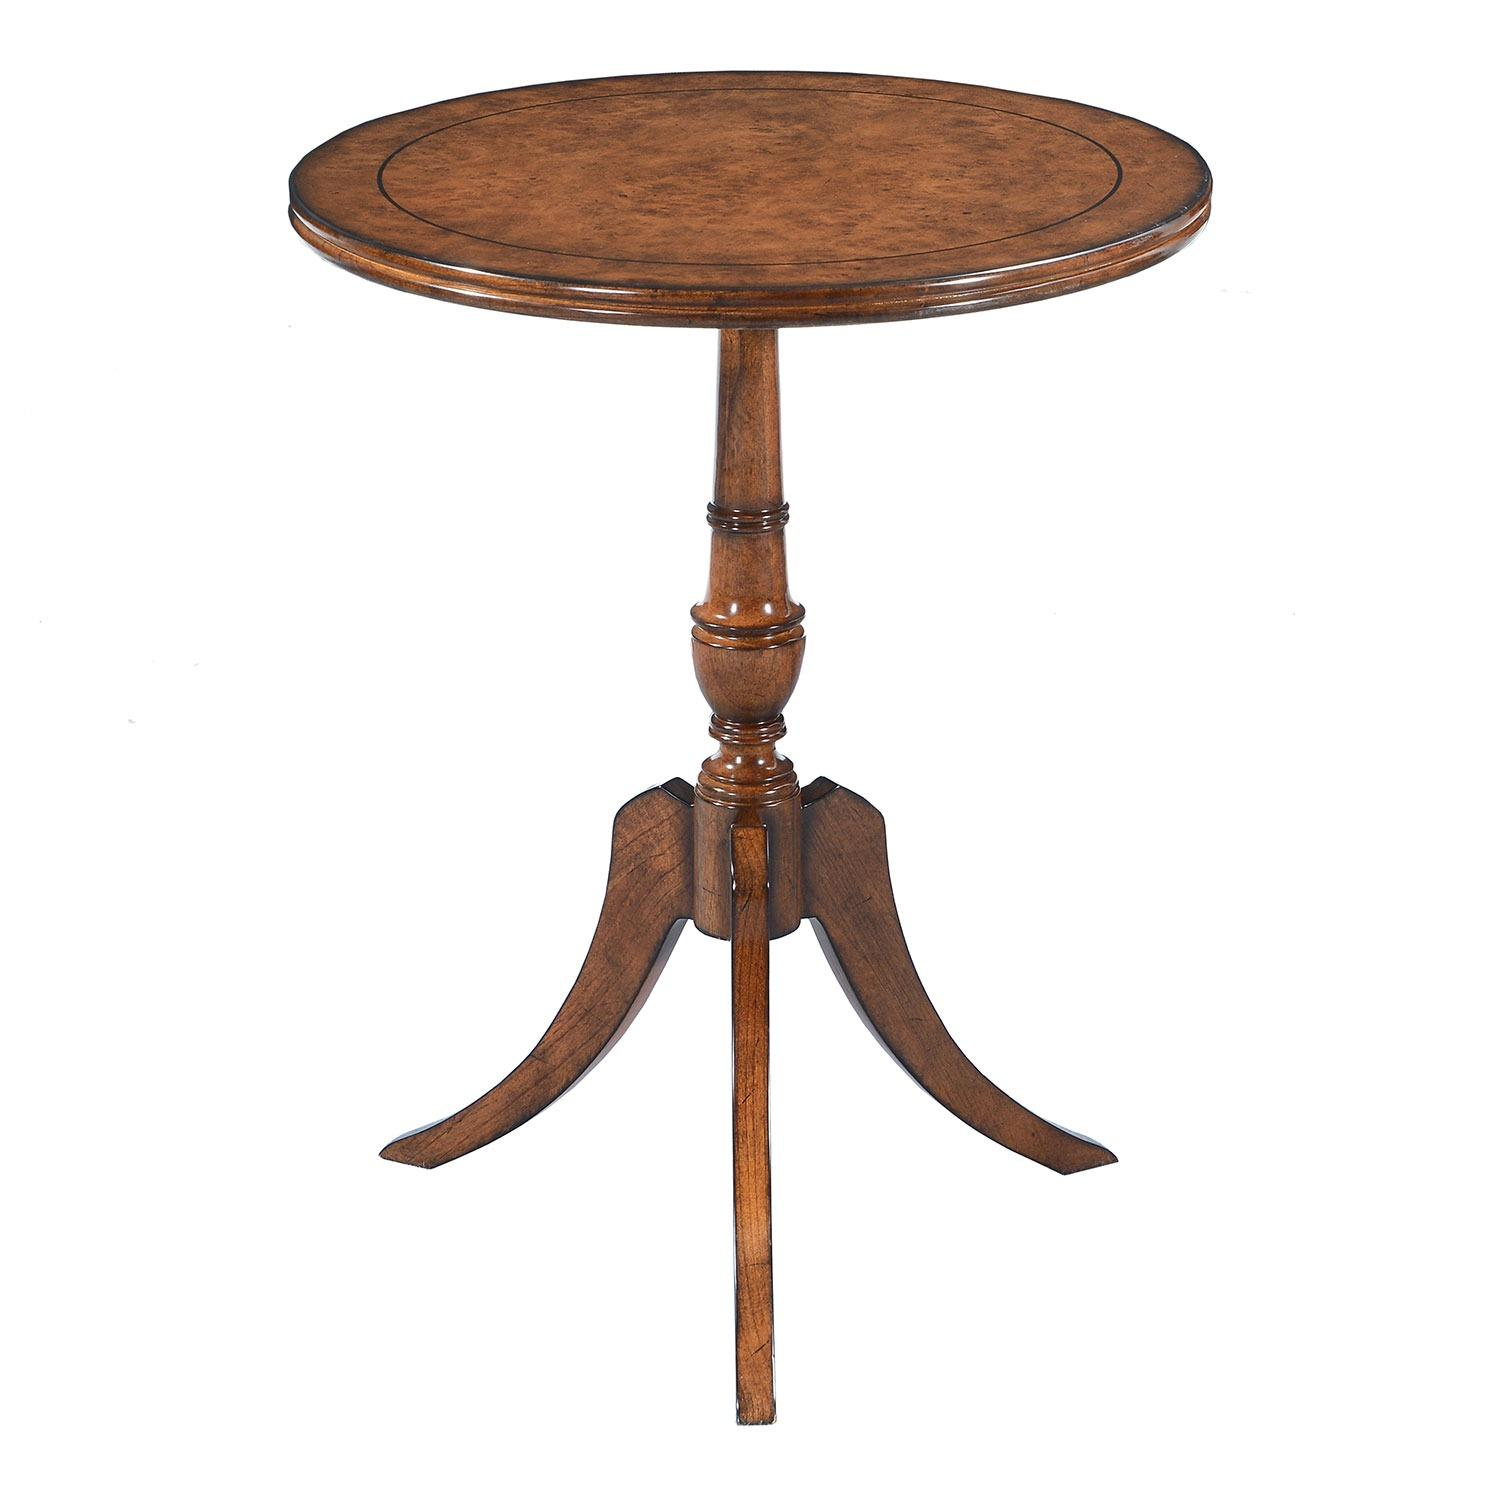 Mauretania wine table - large